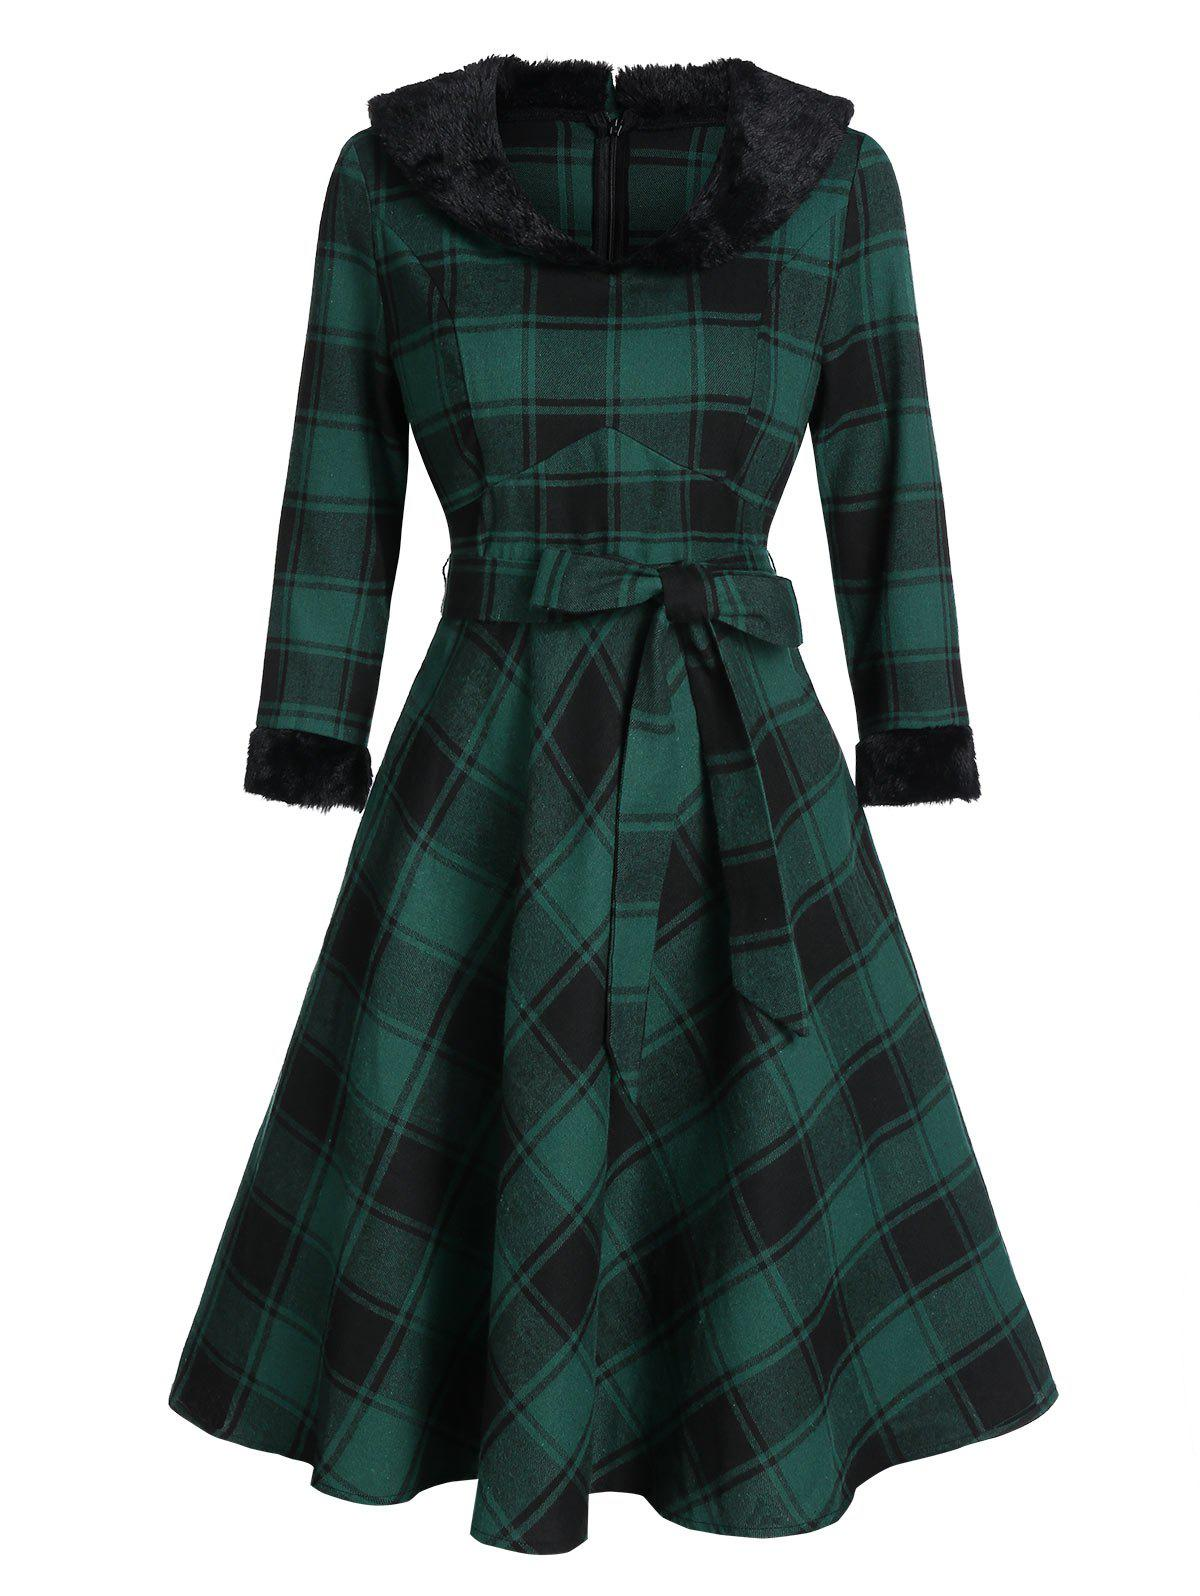 Plaid Print Faux Fur Collar Belted Skater Dress - MEDIUM SEA GREEN 2XL